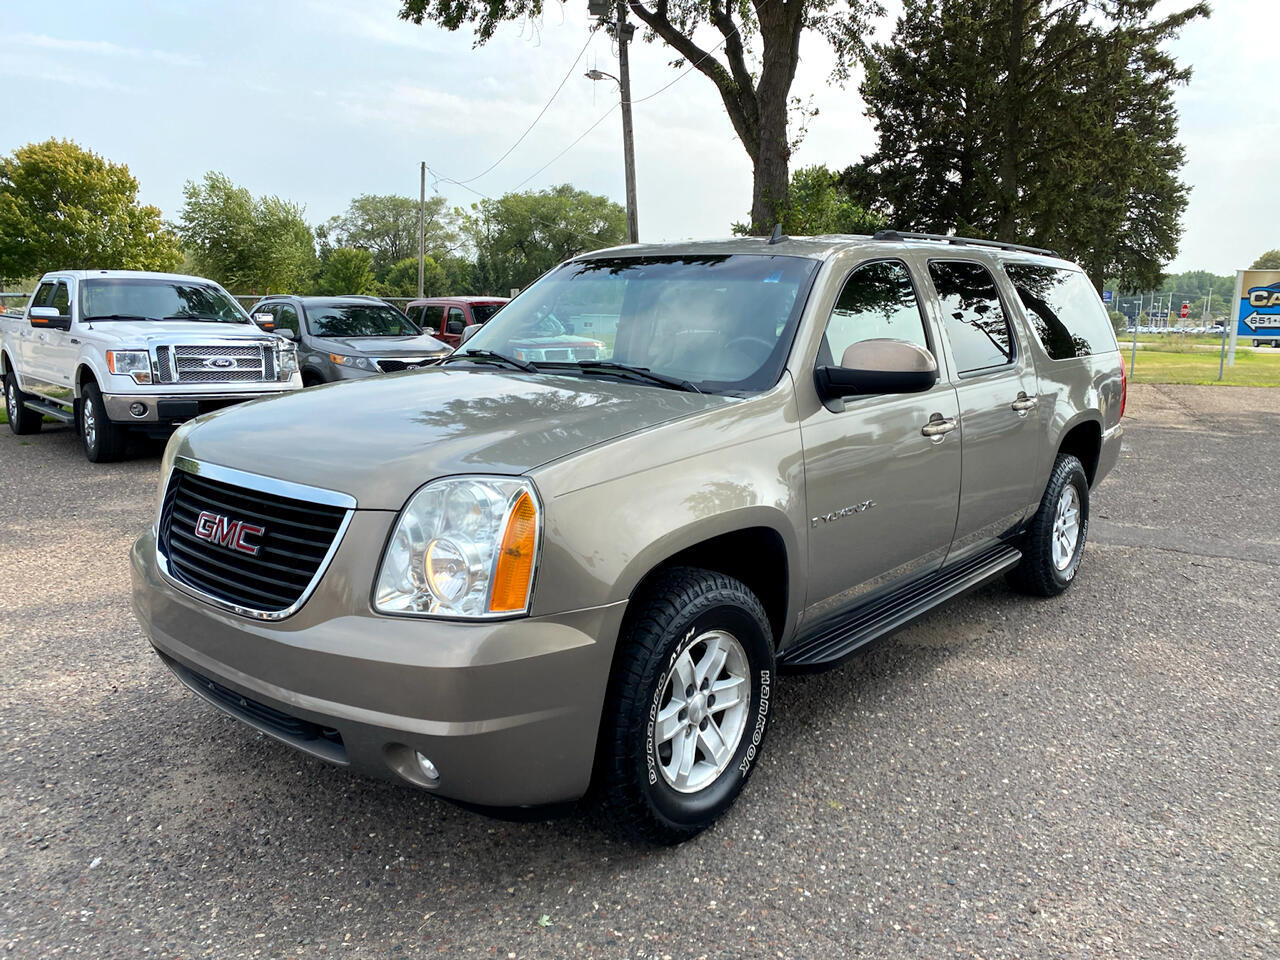 Used 2007 Gmc Yukon Xl 4wd 4dr 1500 Sle For Sale In White Bear Lake Mn 55110 Carfit